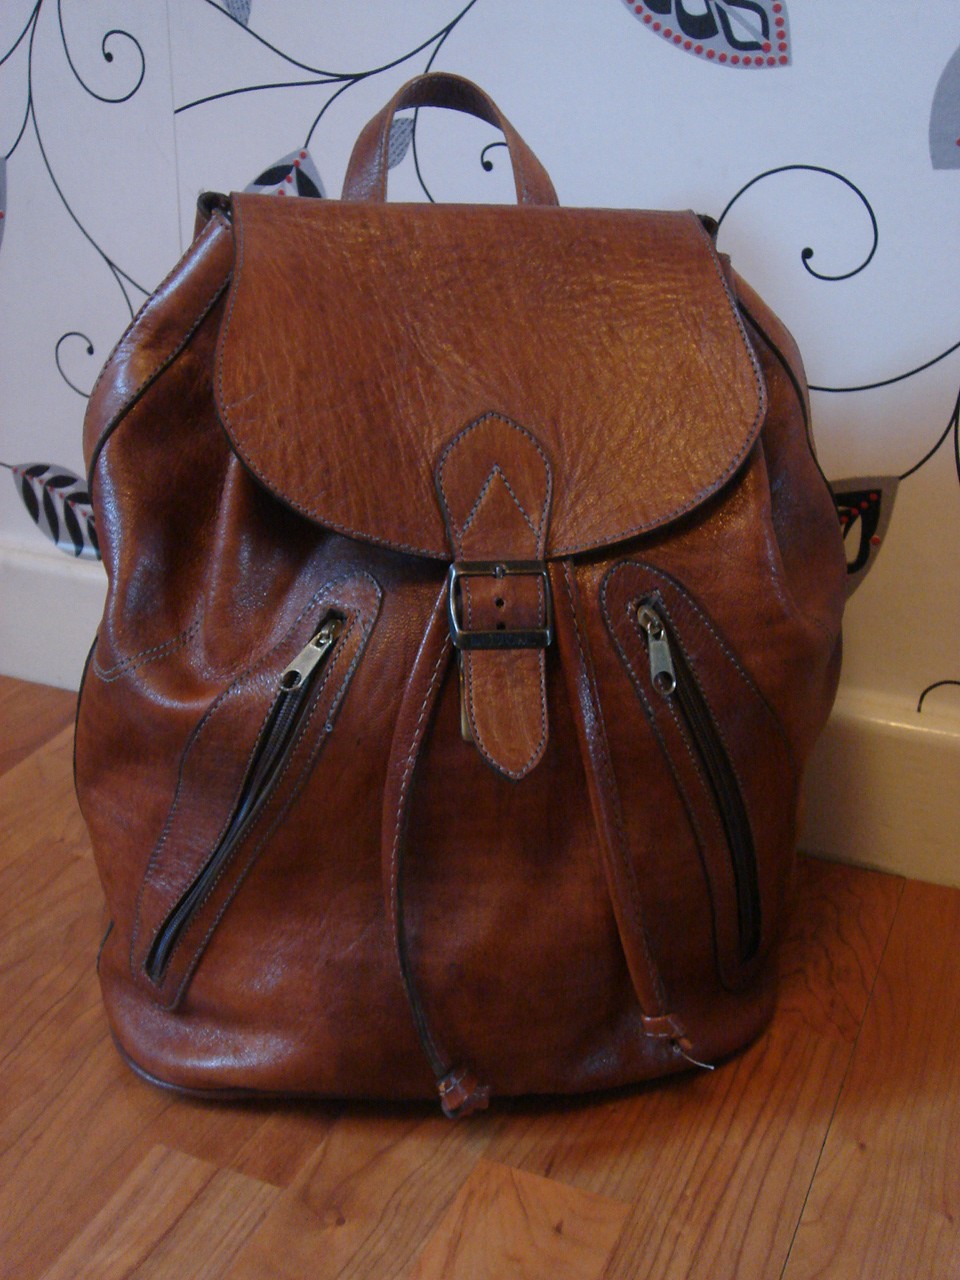 Leather Vintage Backpack tbmOnWnu